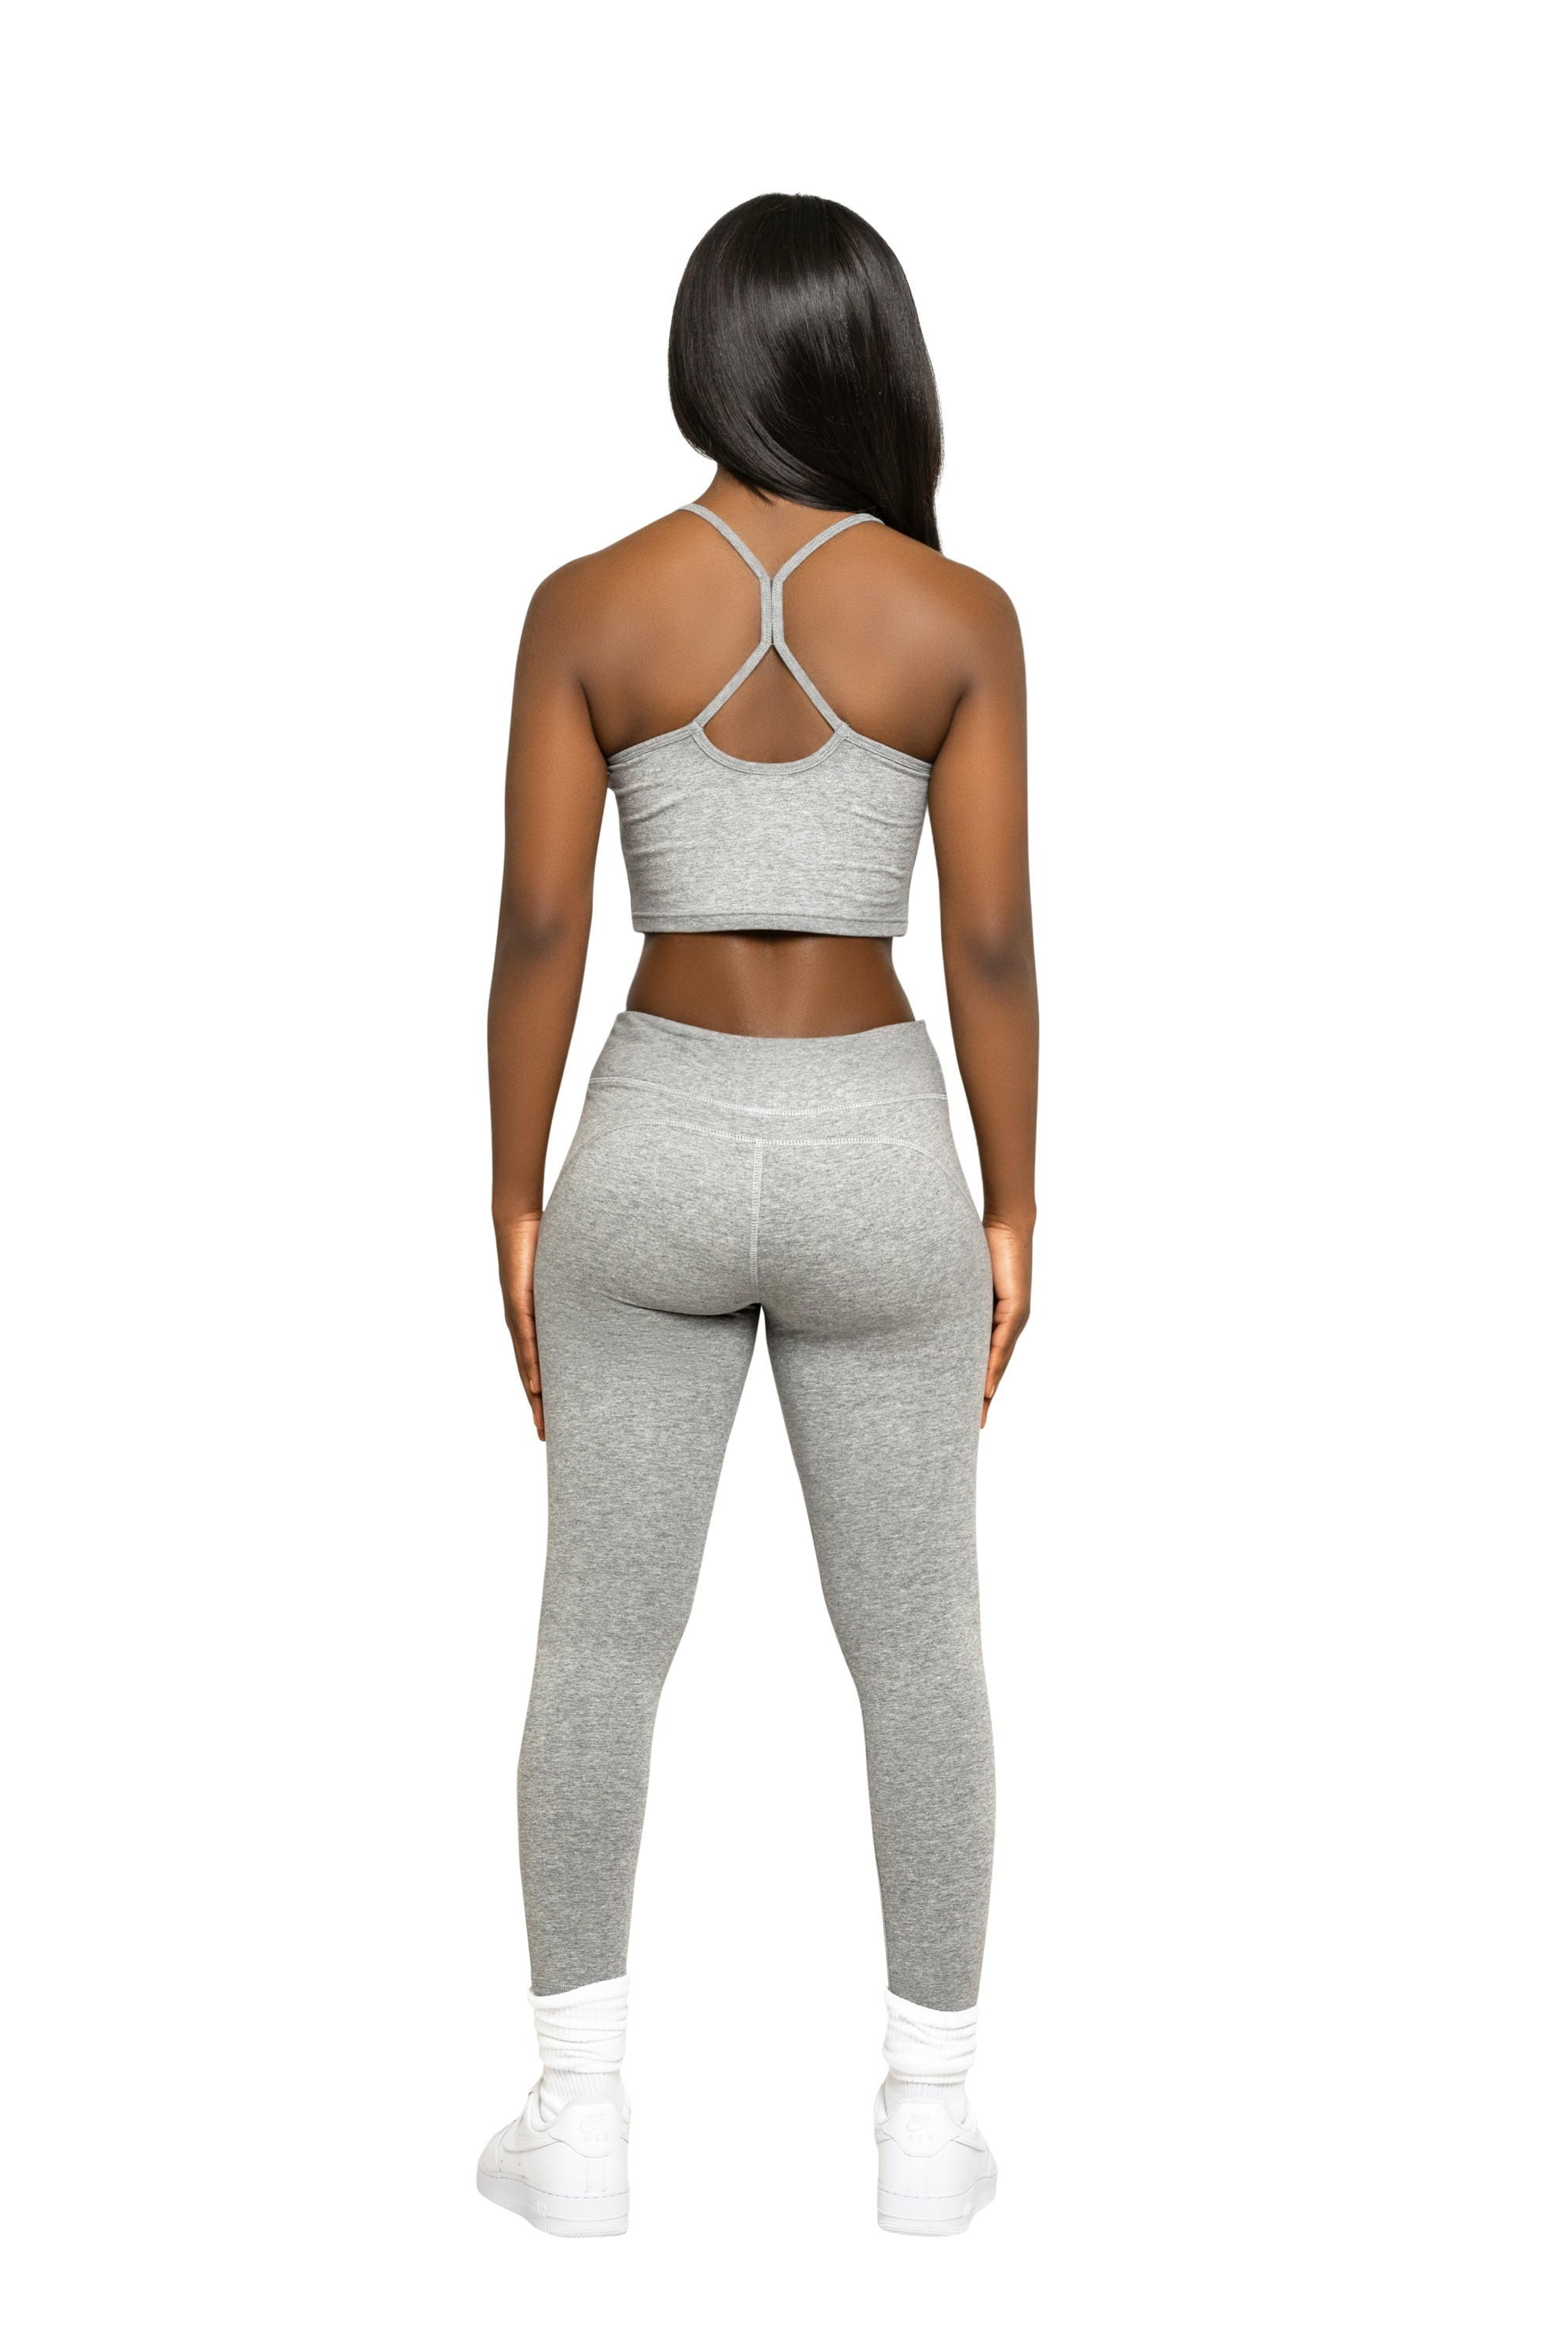 Vibes Grey Leggings